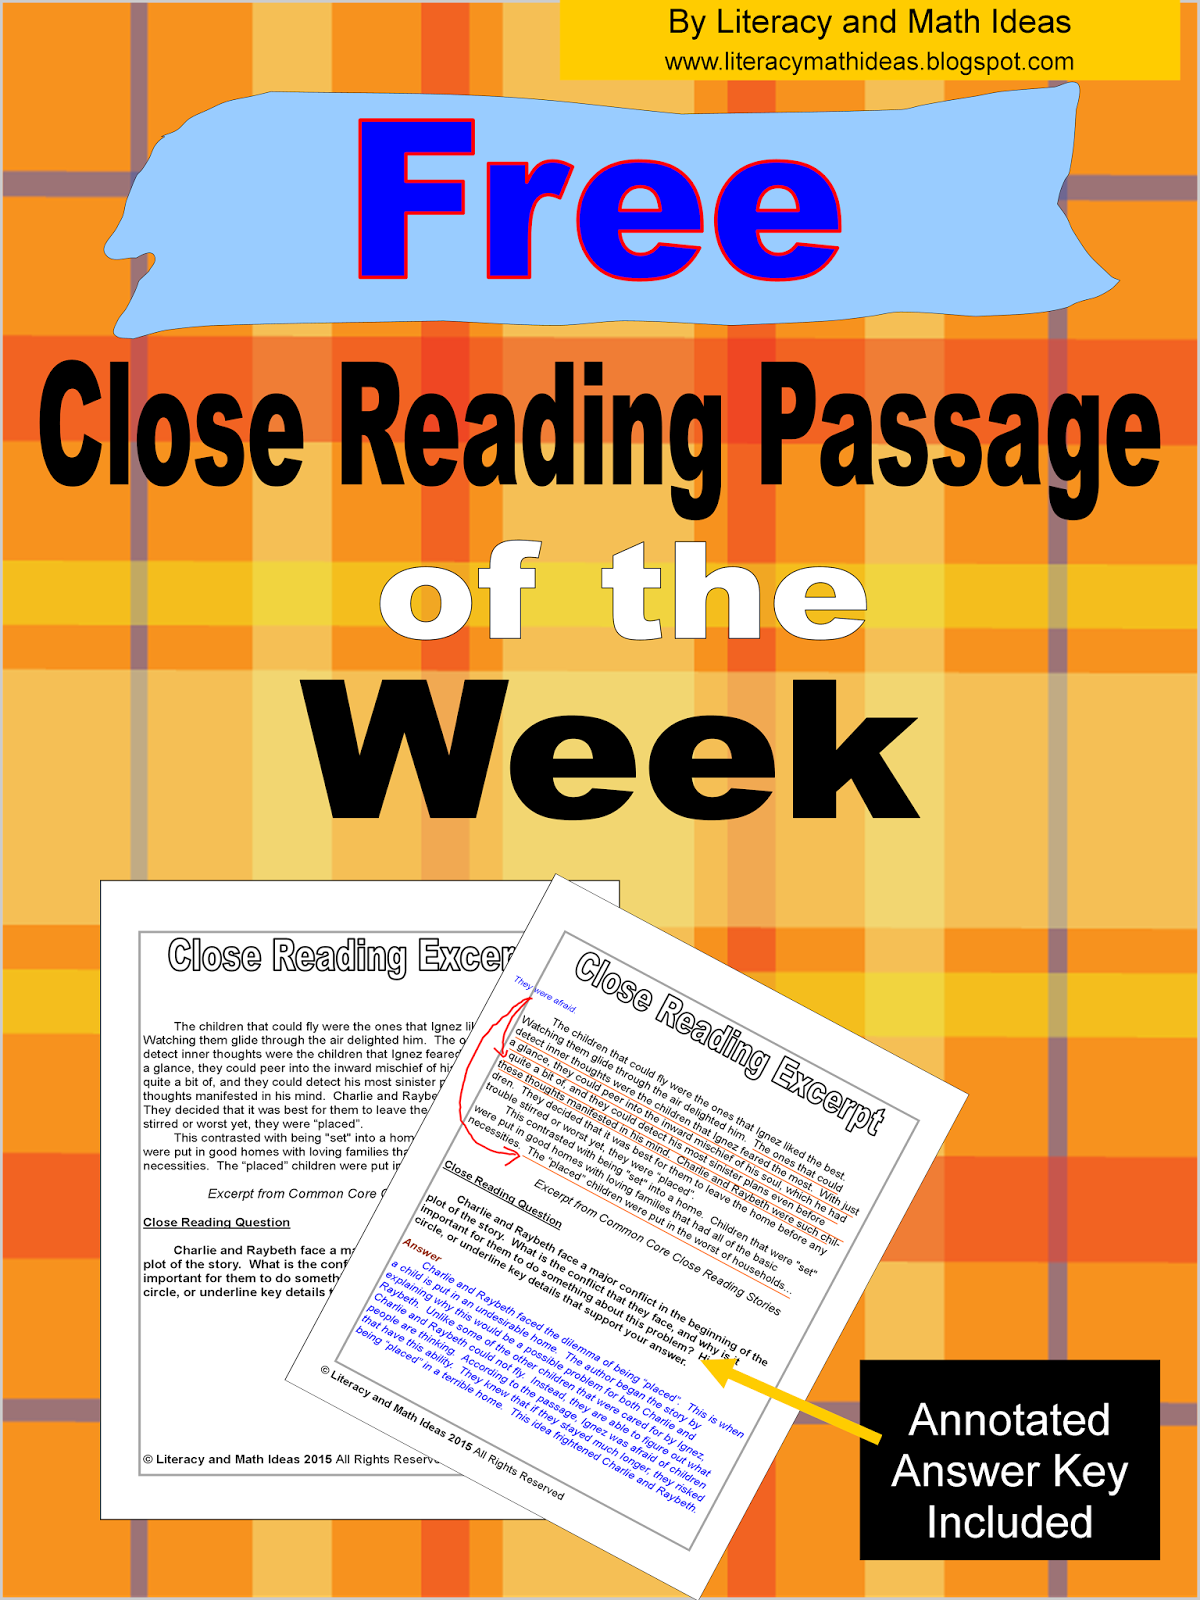 Free Close Reading Passage Of The Week An Annotated Key Is